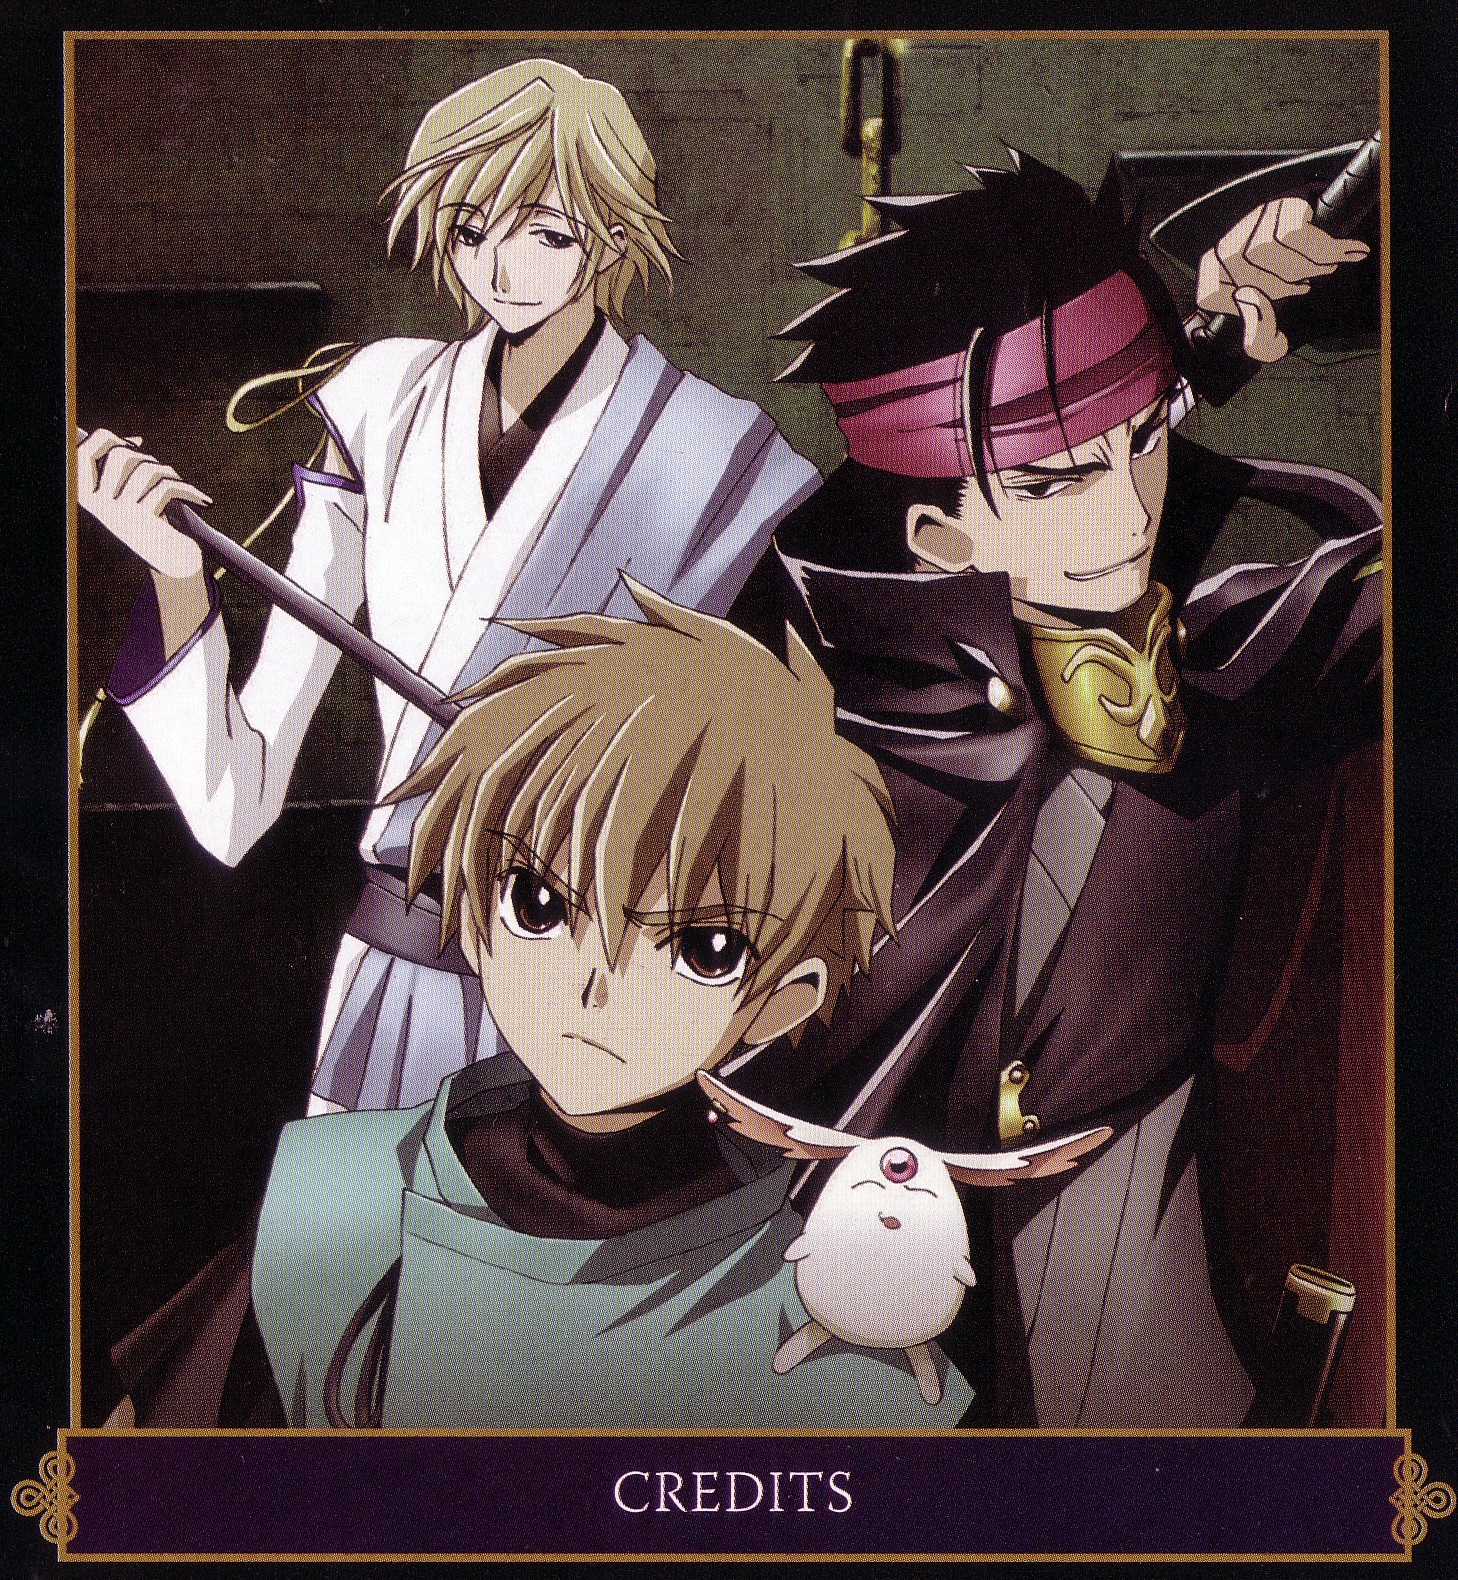 Tsubasa Reservoir Chronicle I Will Save You: Tsubasa Reservoir Chronicle: Kurogane, Syaoran & Faye